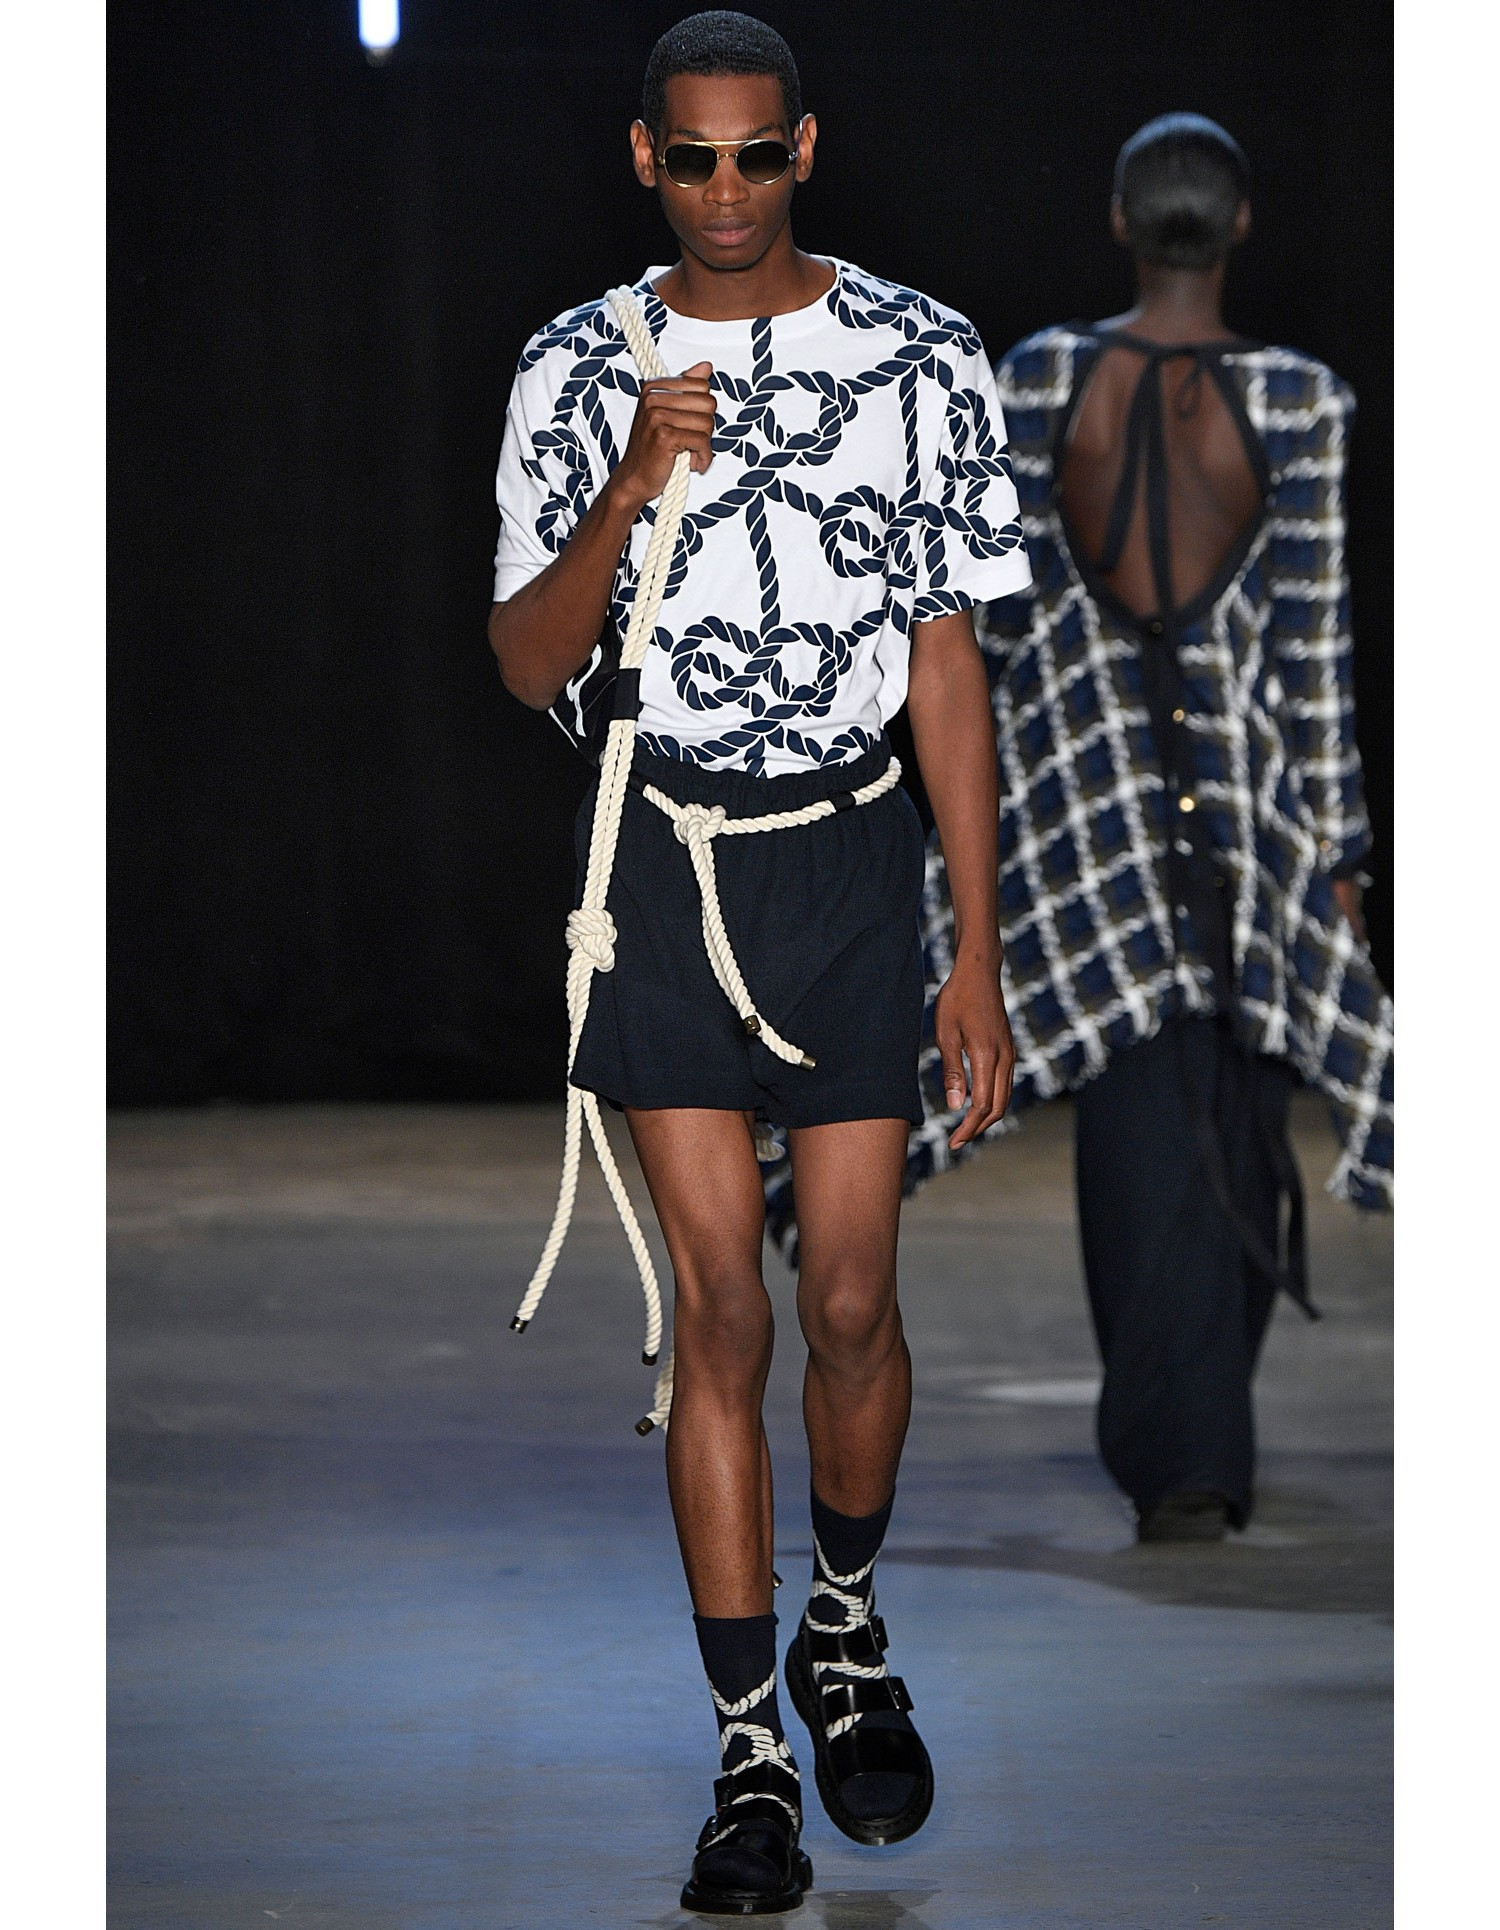 Monse Unisex Rope Print Tee on Runway Model